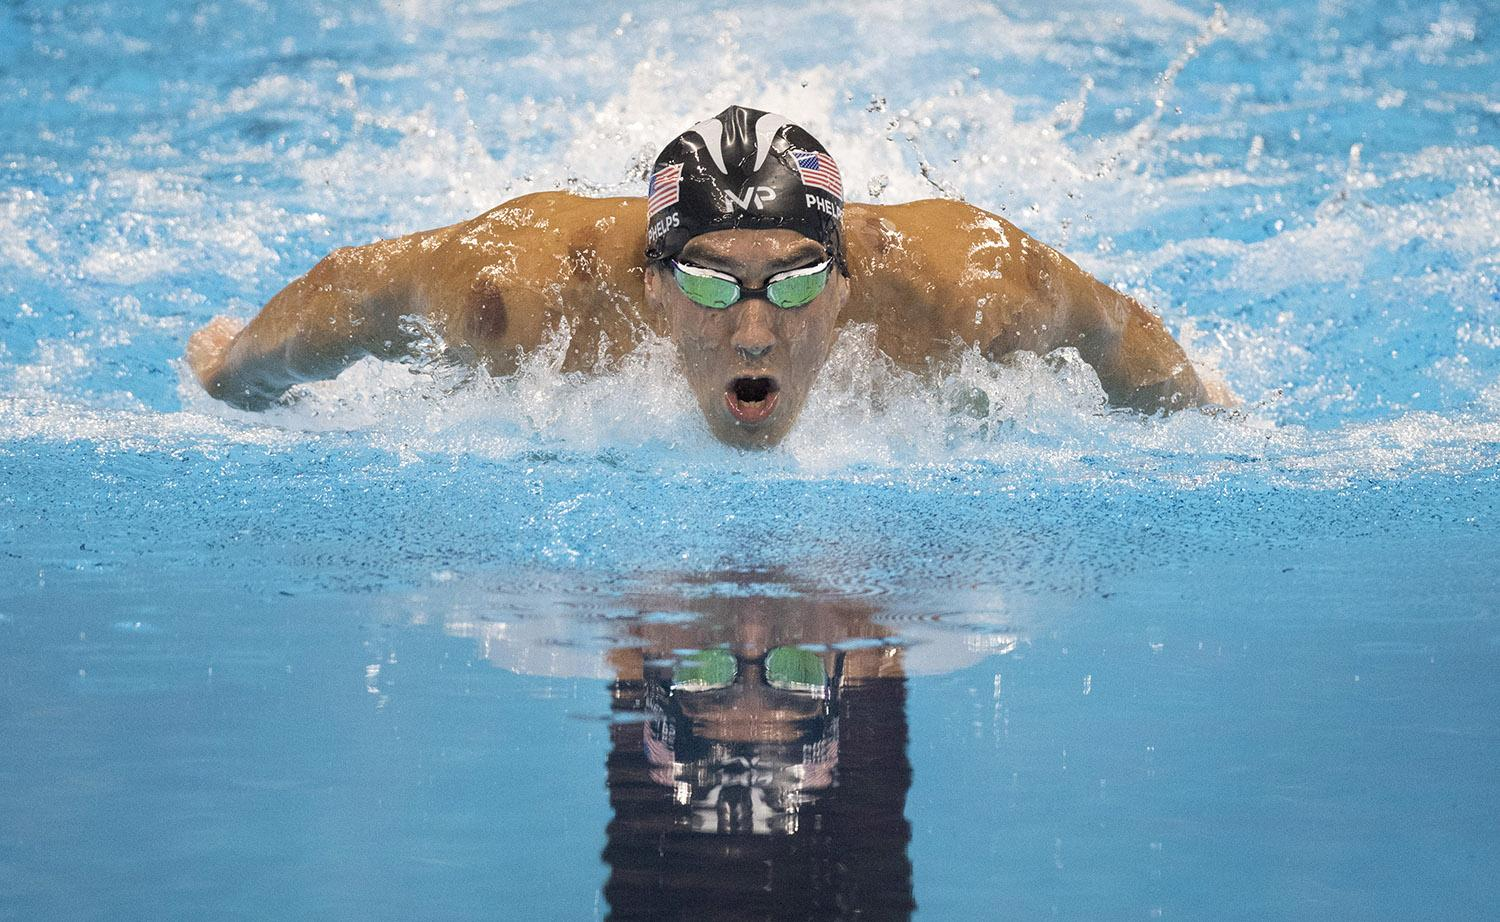 U.S. swimmer Michael Phelps swims to a gold medal in the men's 200m Butterfly at the Olympic Aquatic Stadium in Rio de Janeiro, Brazil, on Tuesday, Aug. 9, 2016. (Mark Reis/Colorado Springs Gazette/TNS)